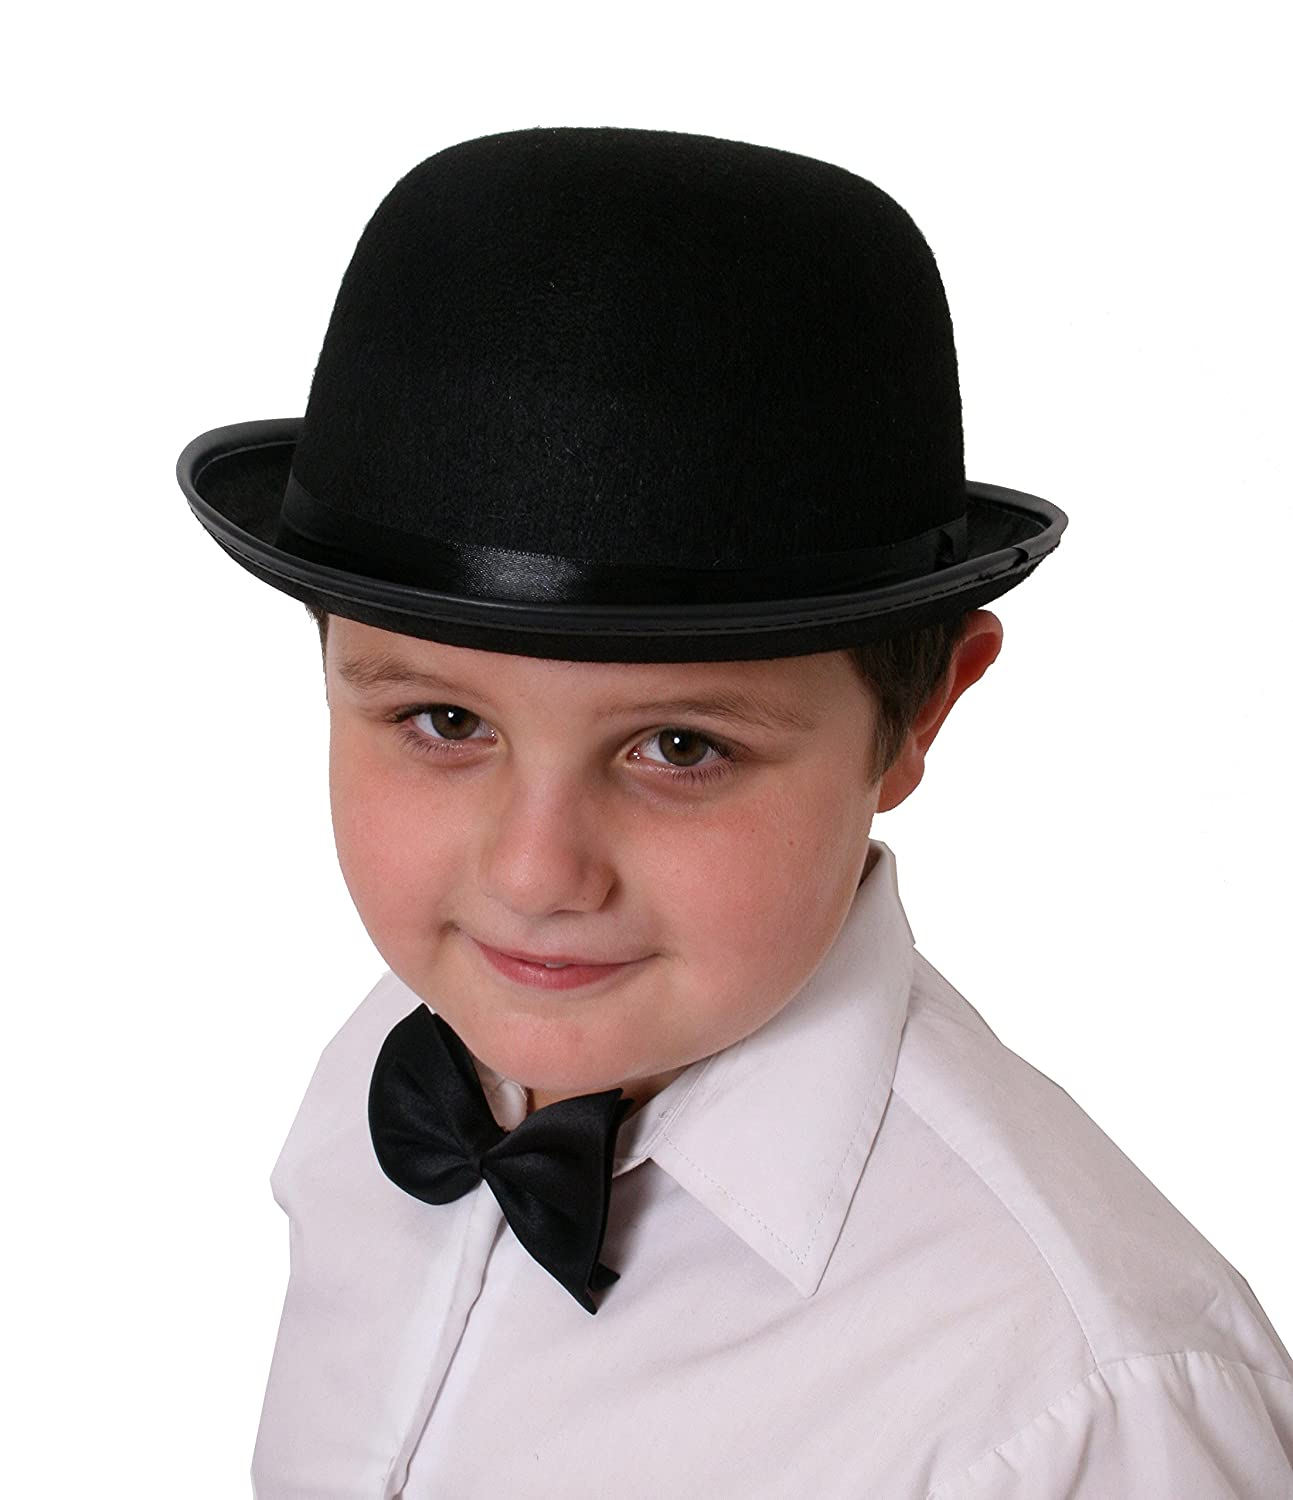 Vintage Style Children's Clothing: Girls, Boys, Baby, Toddler Small Bowler hat Black felt 55cm-56cm Ladies or Childrens GENTS FANCY DRESS  AT vintagedancer.com